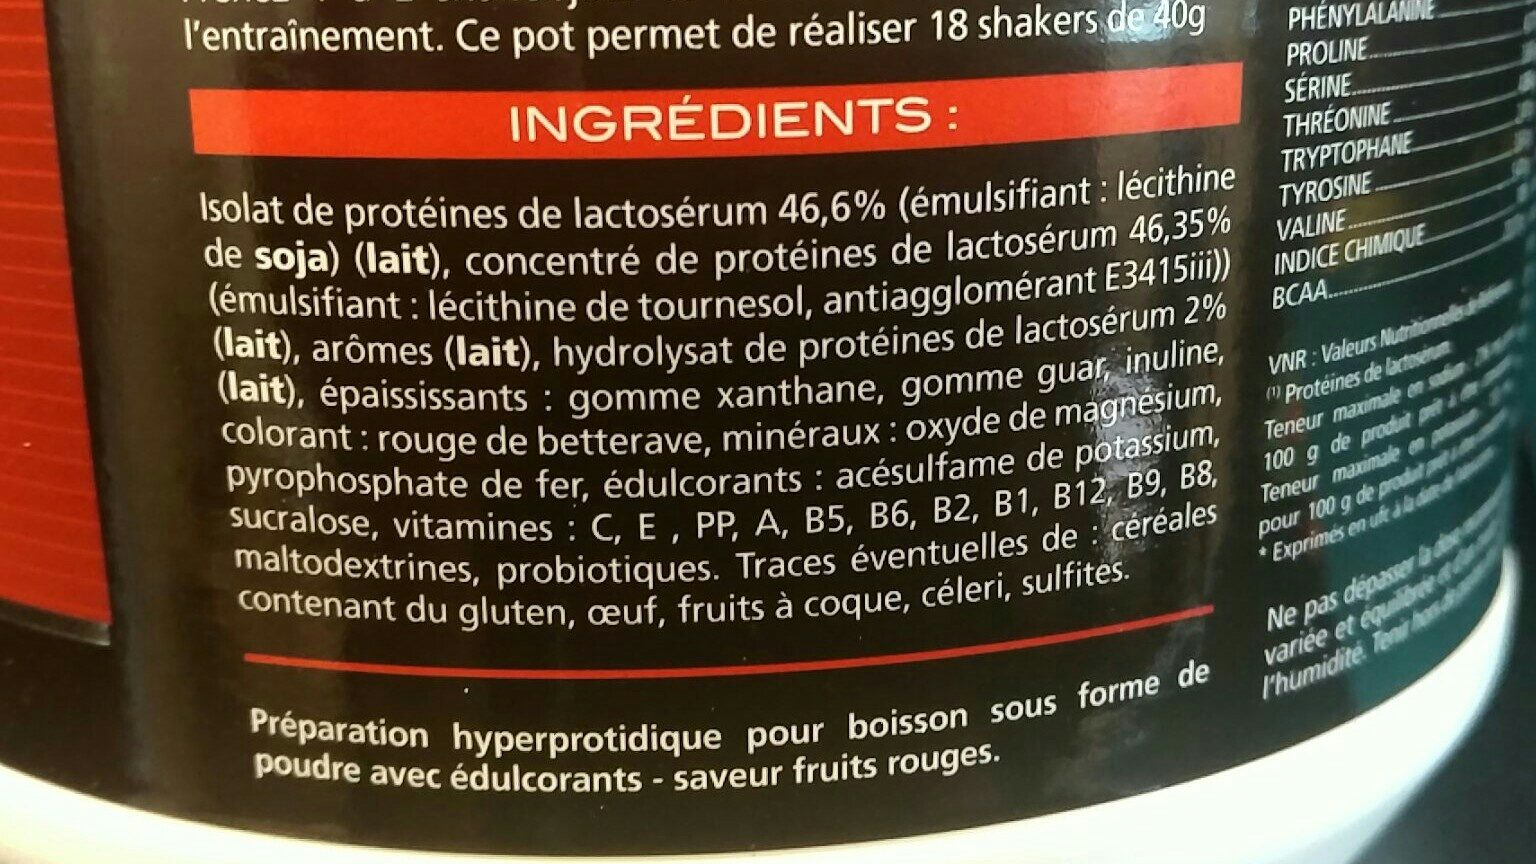 Eafit Pure Whey Croissance Musculaire Max Yaourt Fruits Rouges - Ingrediënten